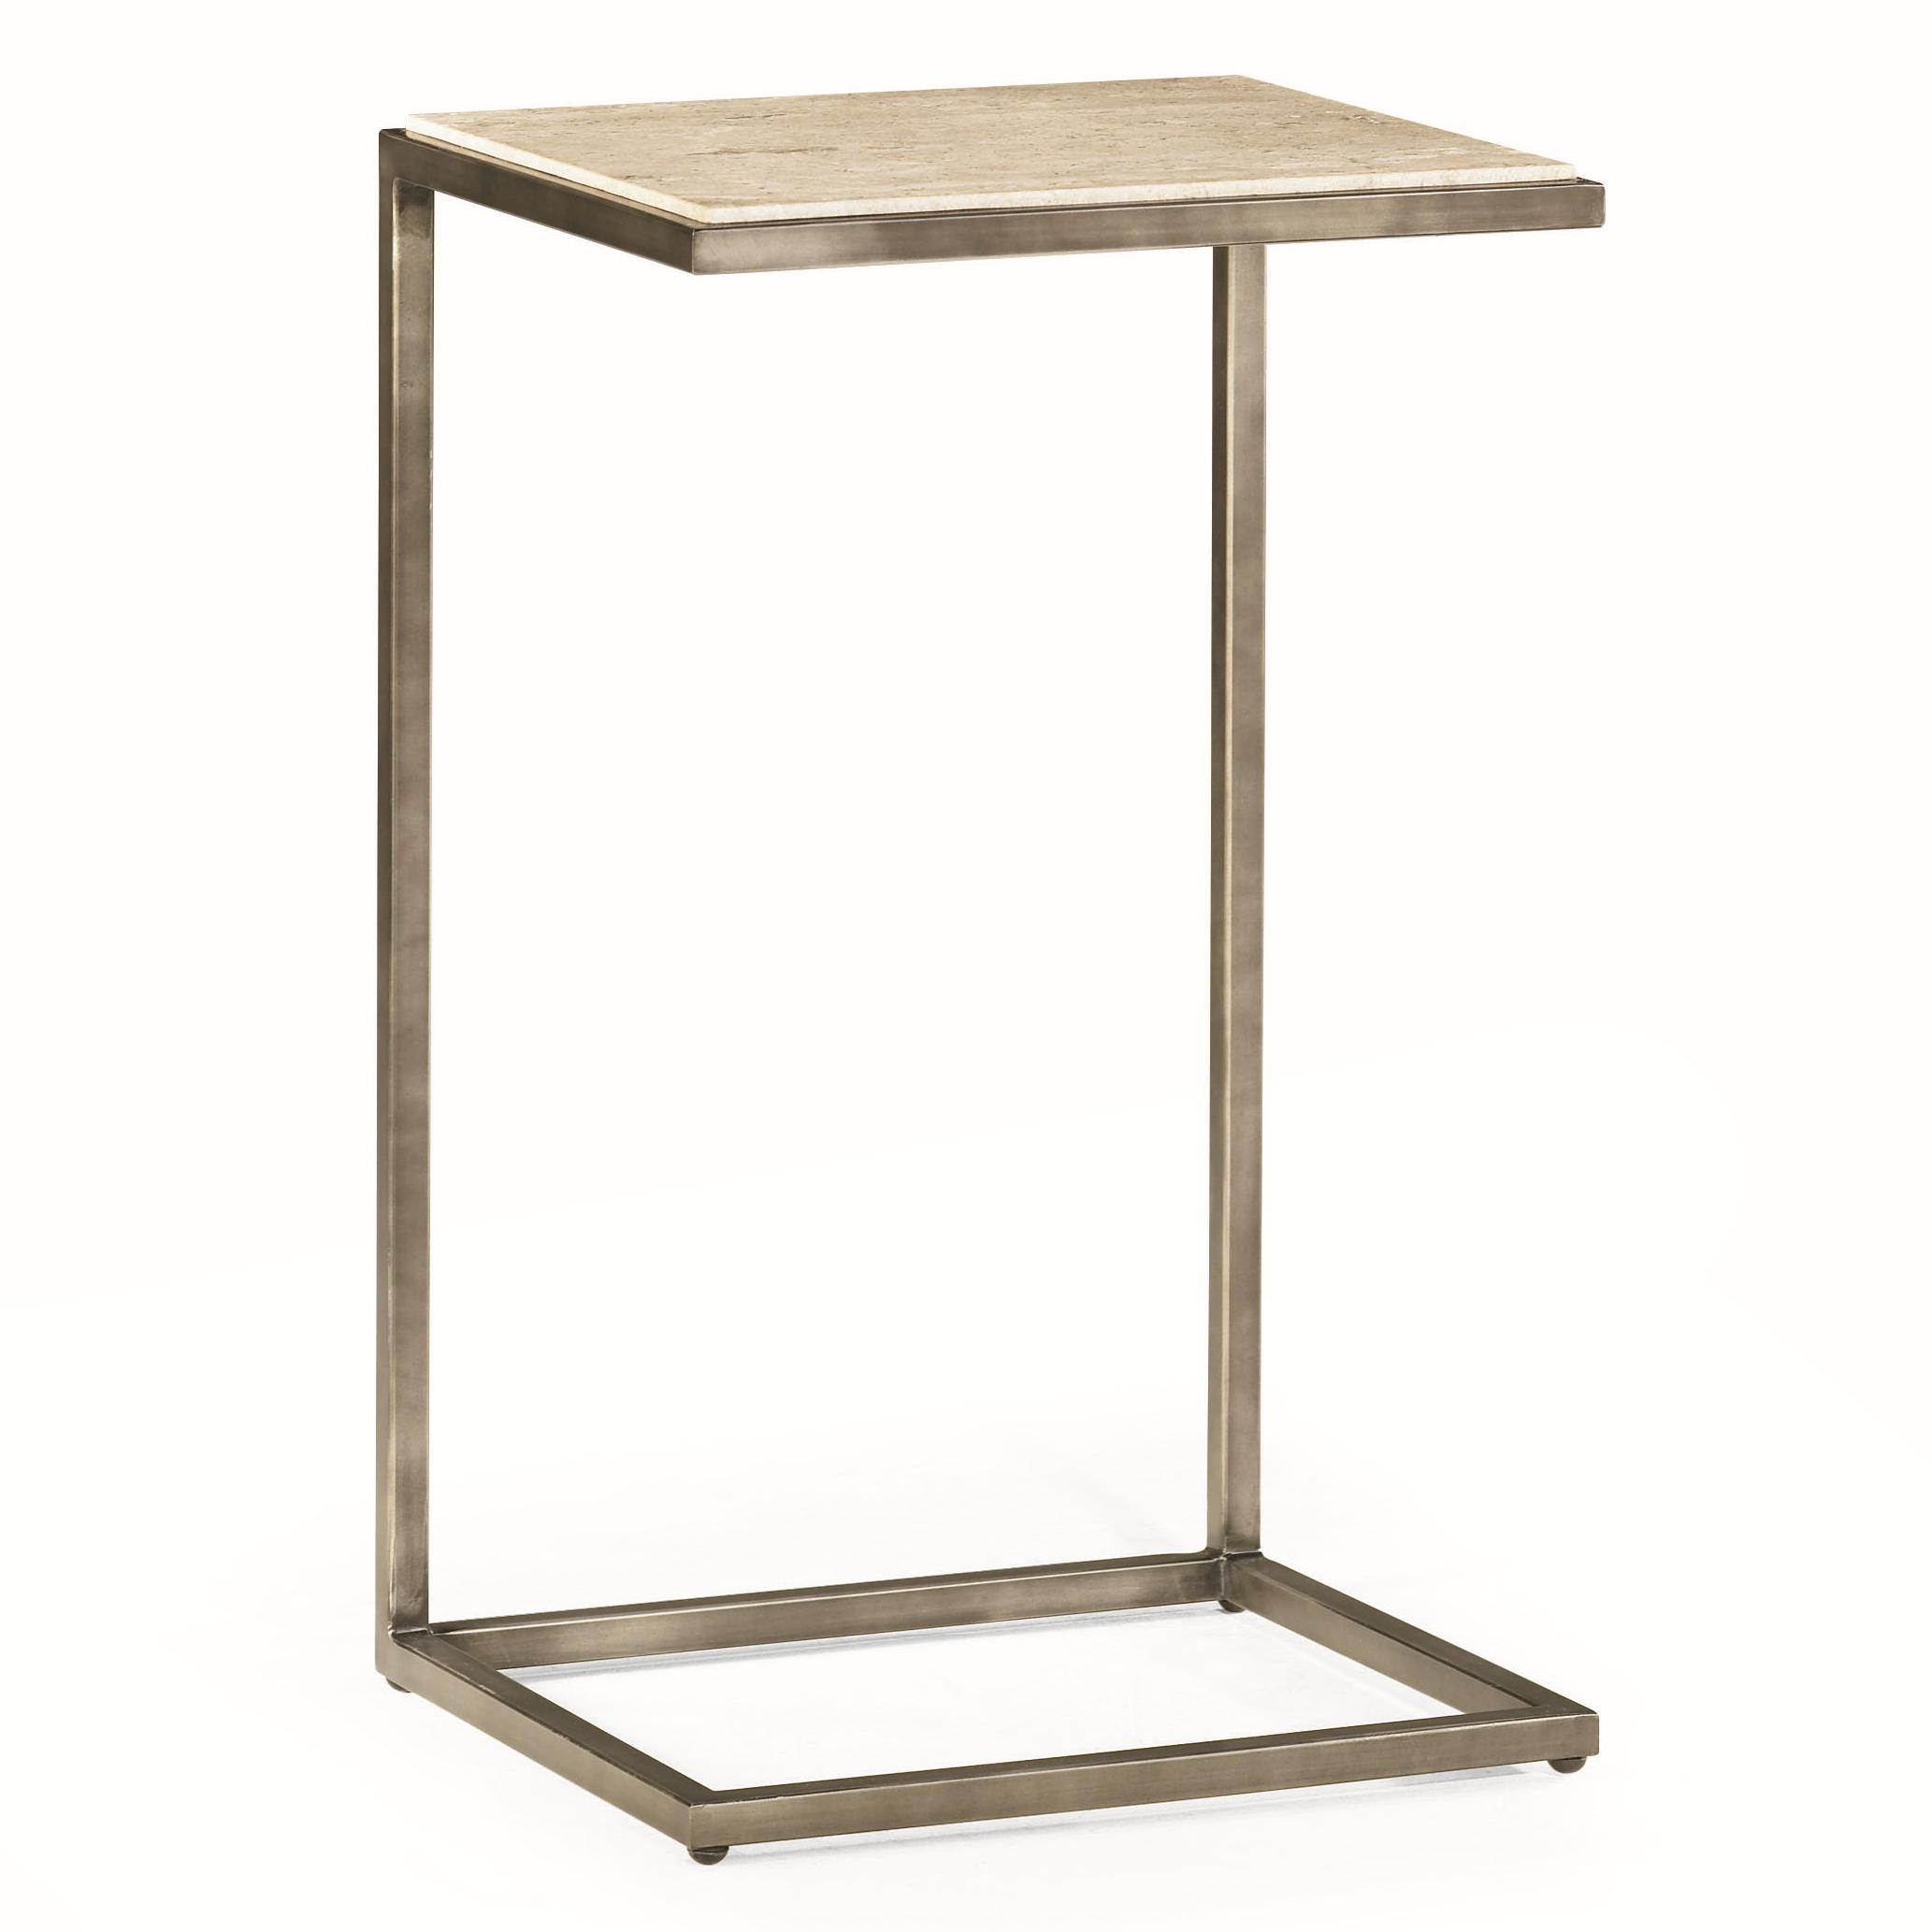 rectangular accent table with bronze finish hammary wolf and products color modern basics unfinished furniture perspex coffee nest petrified wood side floor transitions for uneven